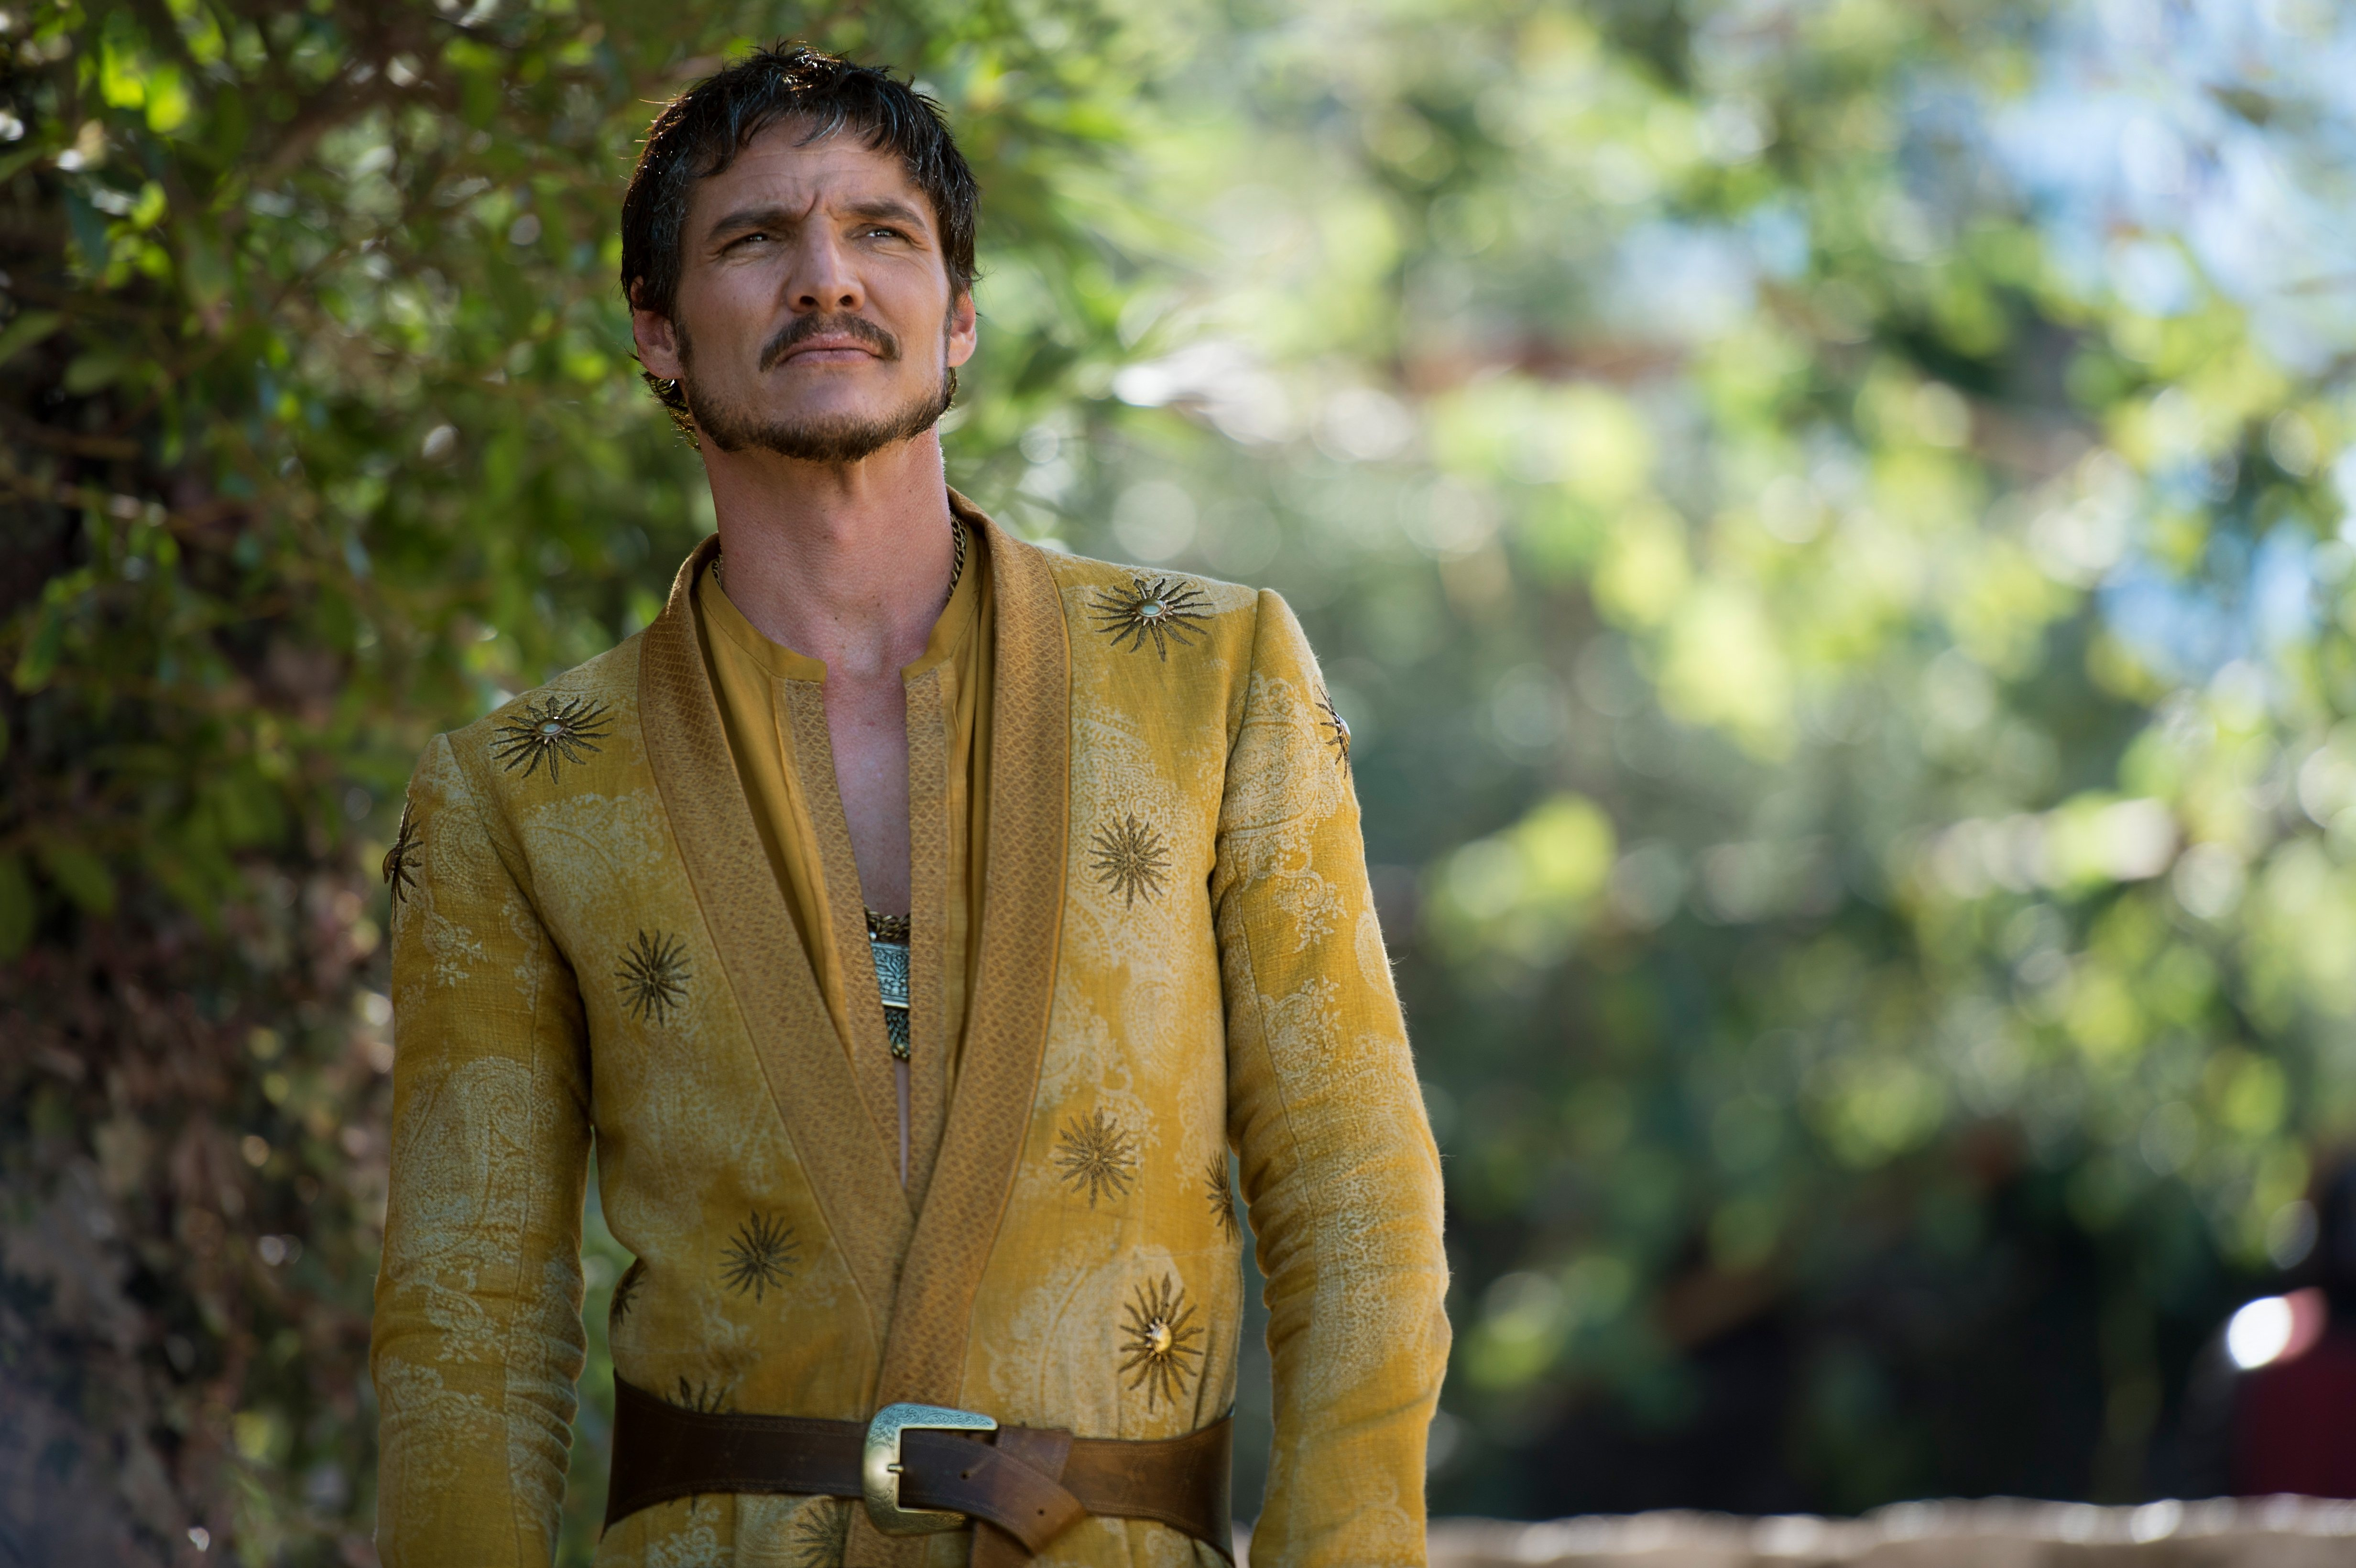 oberyn martell oberyn martell photo 37040413 fanpop. Black Bedroom Furniture Sets. Home Design Ideas